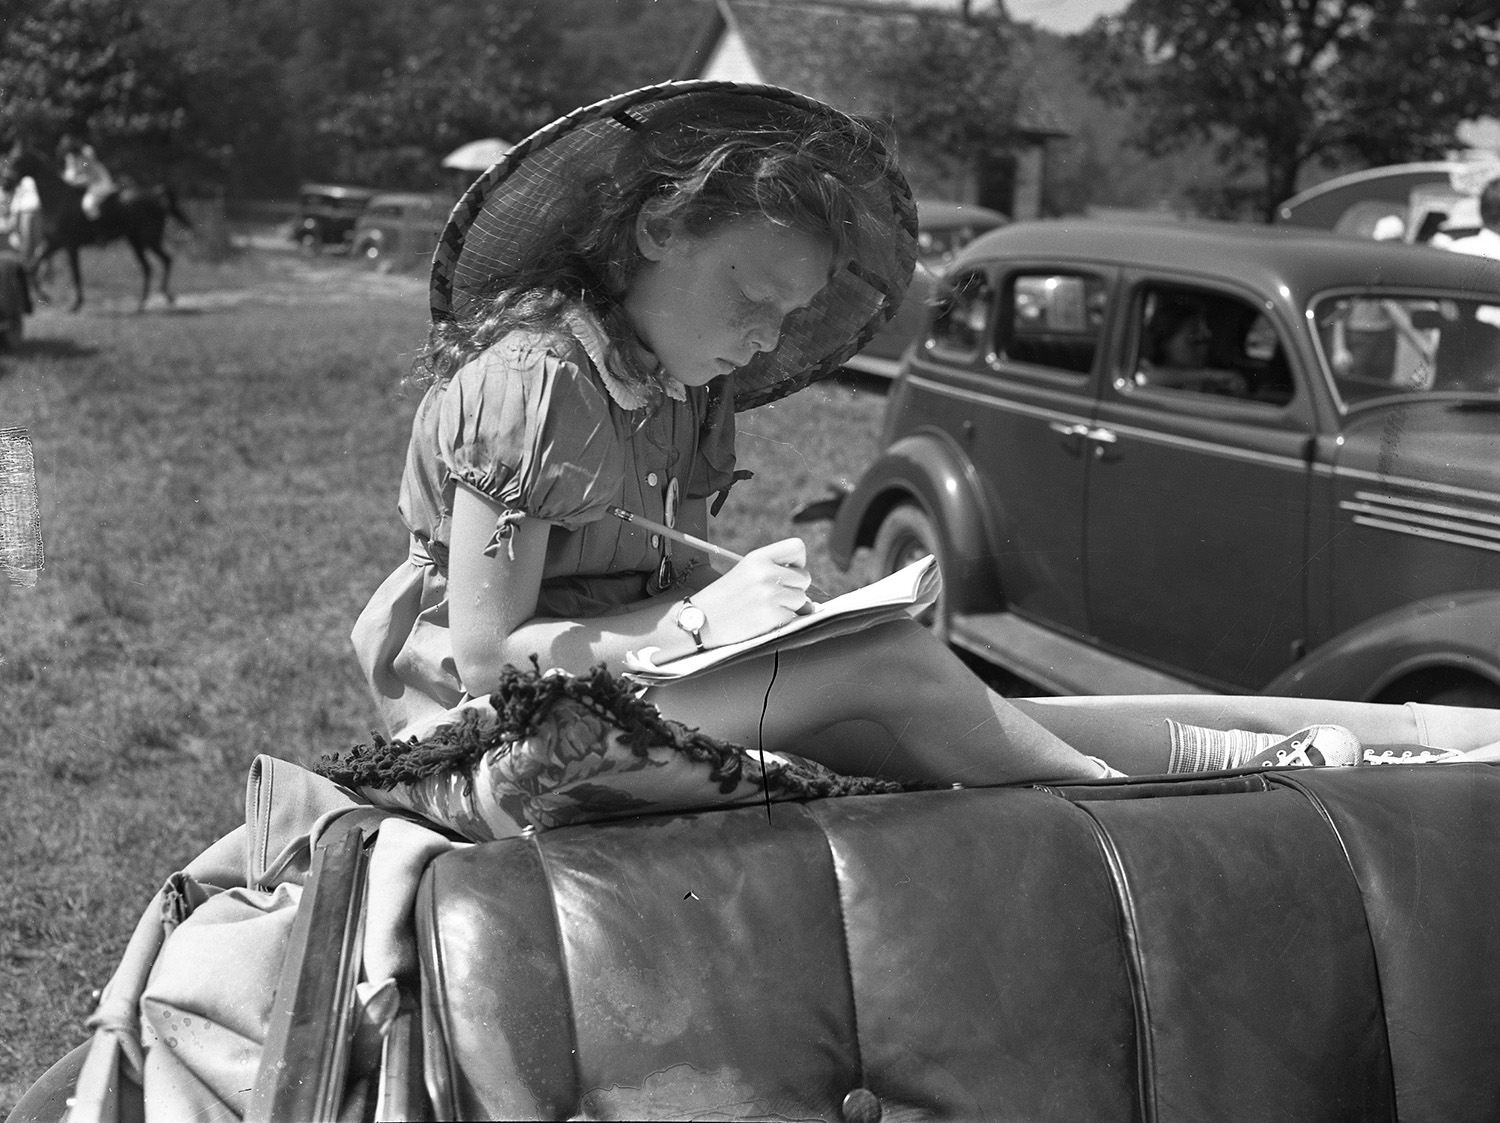 Marcia Corliss, of Sunapee, NH. sits in automobile jumpseat at Harrison Horse Show, Aug. 5, 1938. From the Portland Public Library archival collection of Portland Press Herald, Maine Sunday Telegram and Evening Express photos.